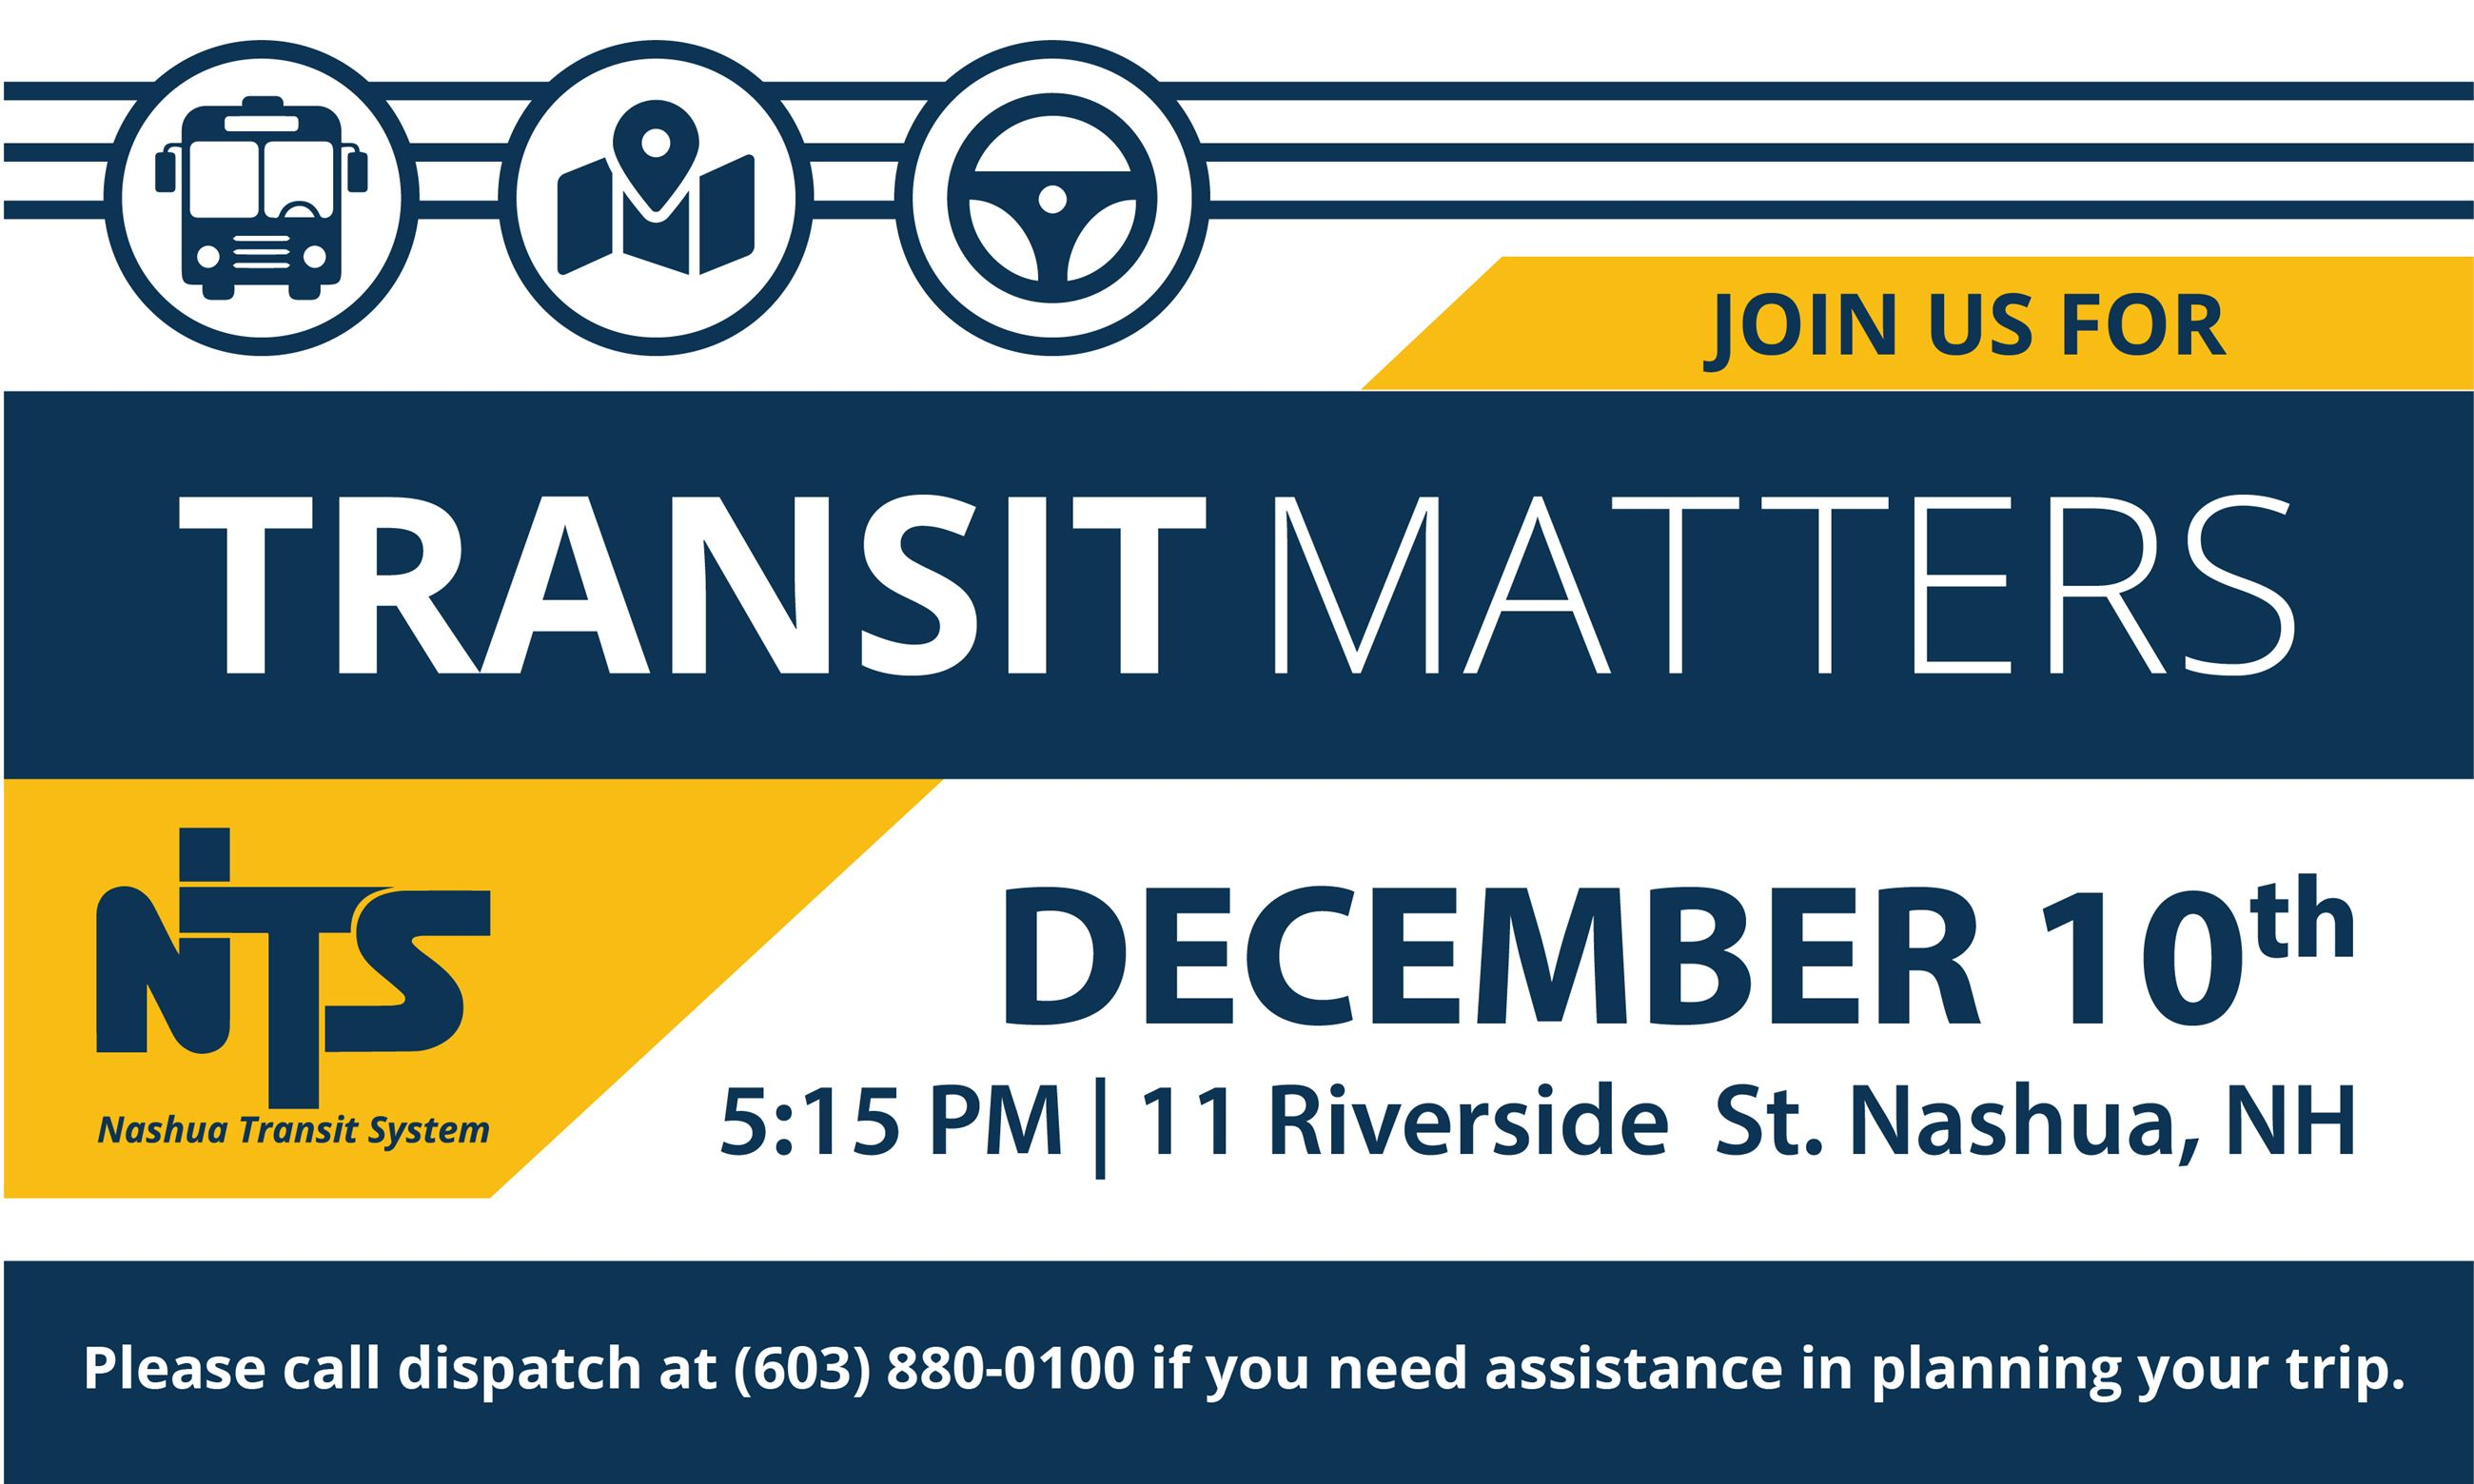 Join NTS for Transit Matters December 10th at 5:15pm at 11 Riverside St. Nashua. For assistance plan